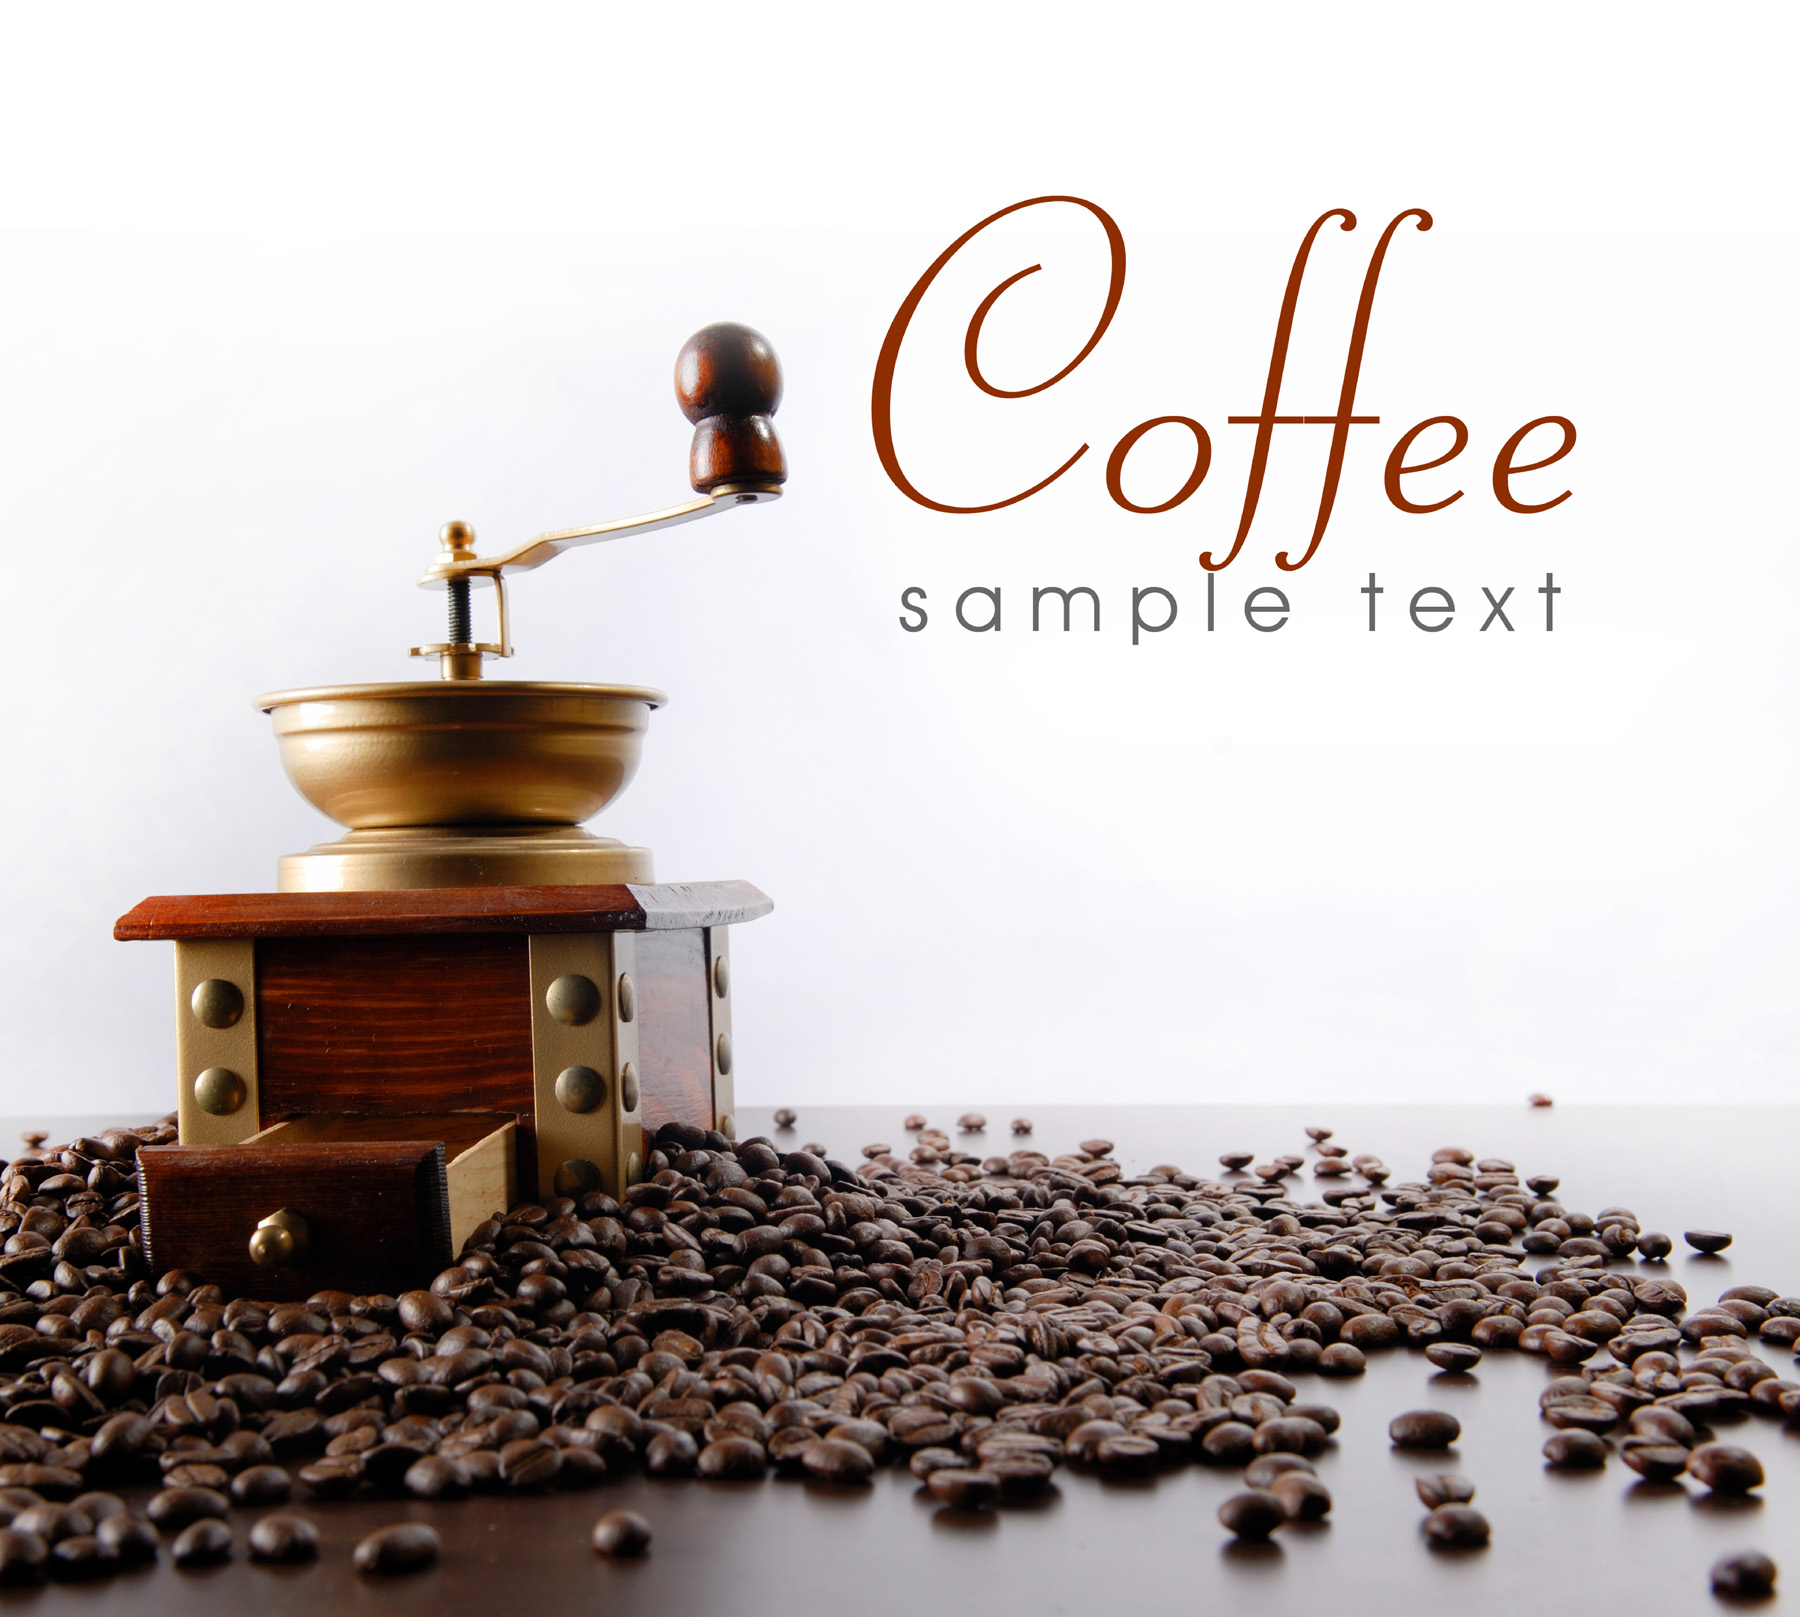 Coffee beans and coffee grinder 52275